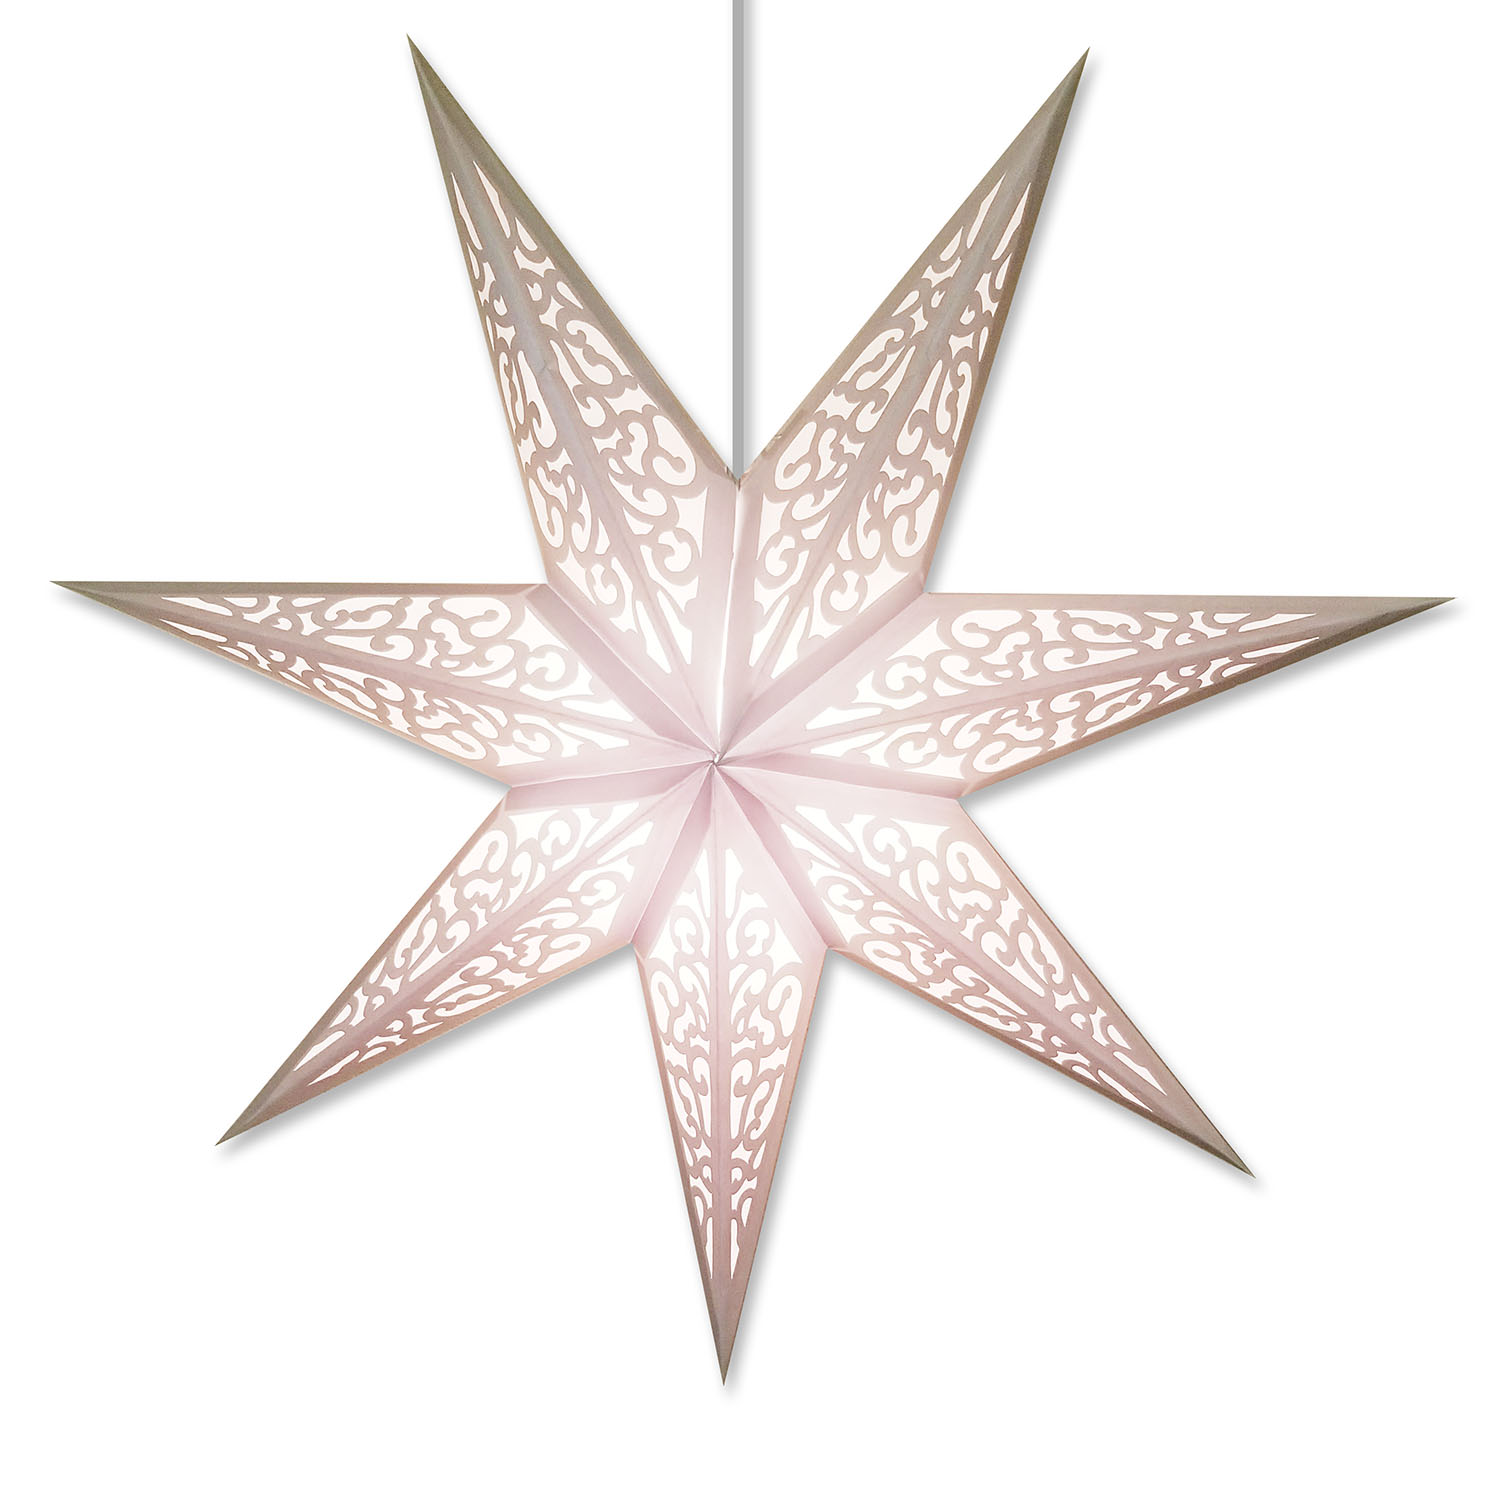 Ethereal Star Lamp 7 pt